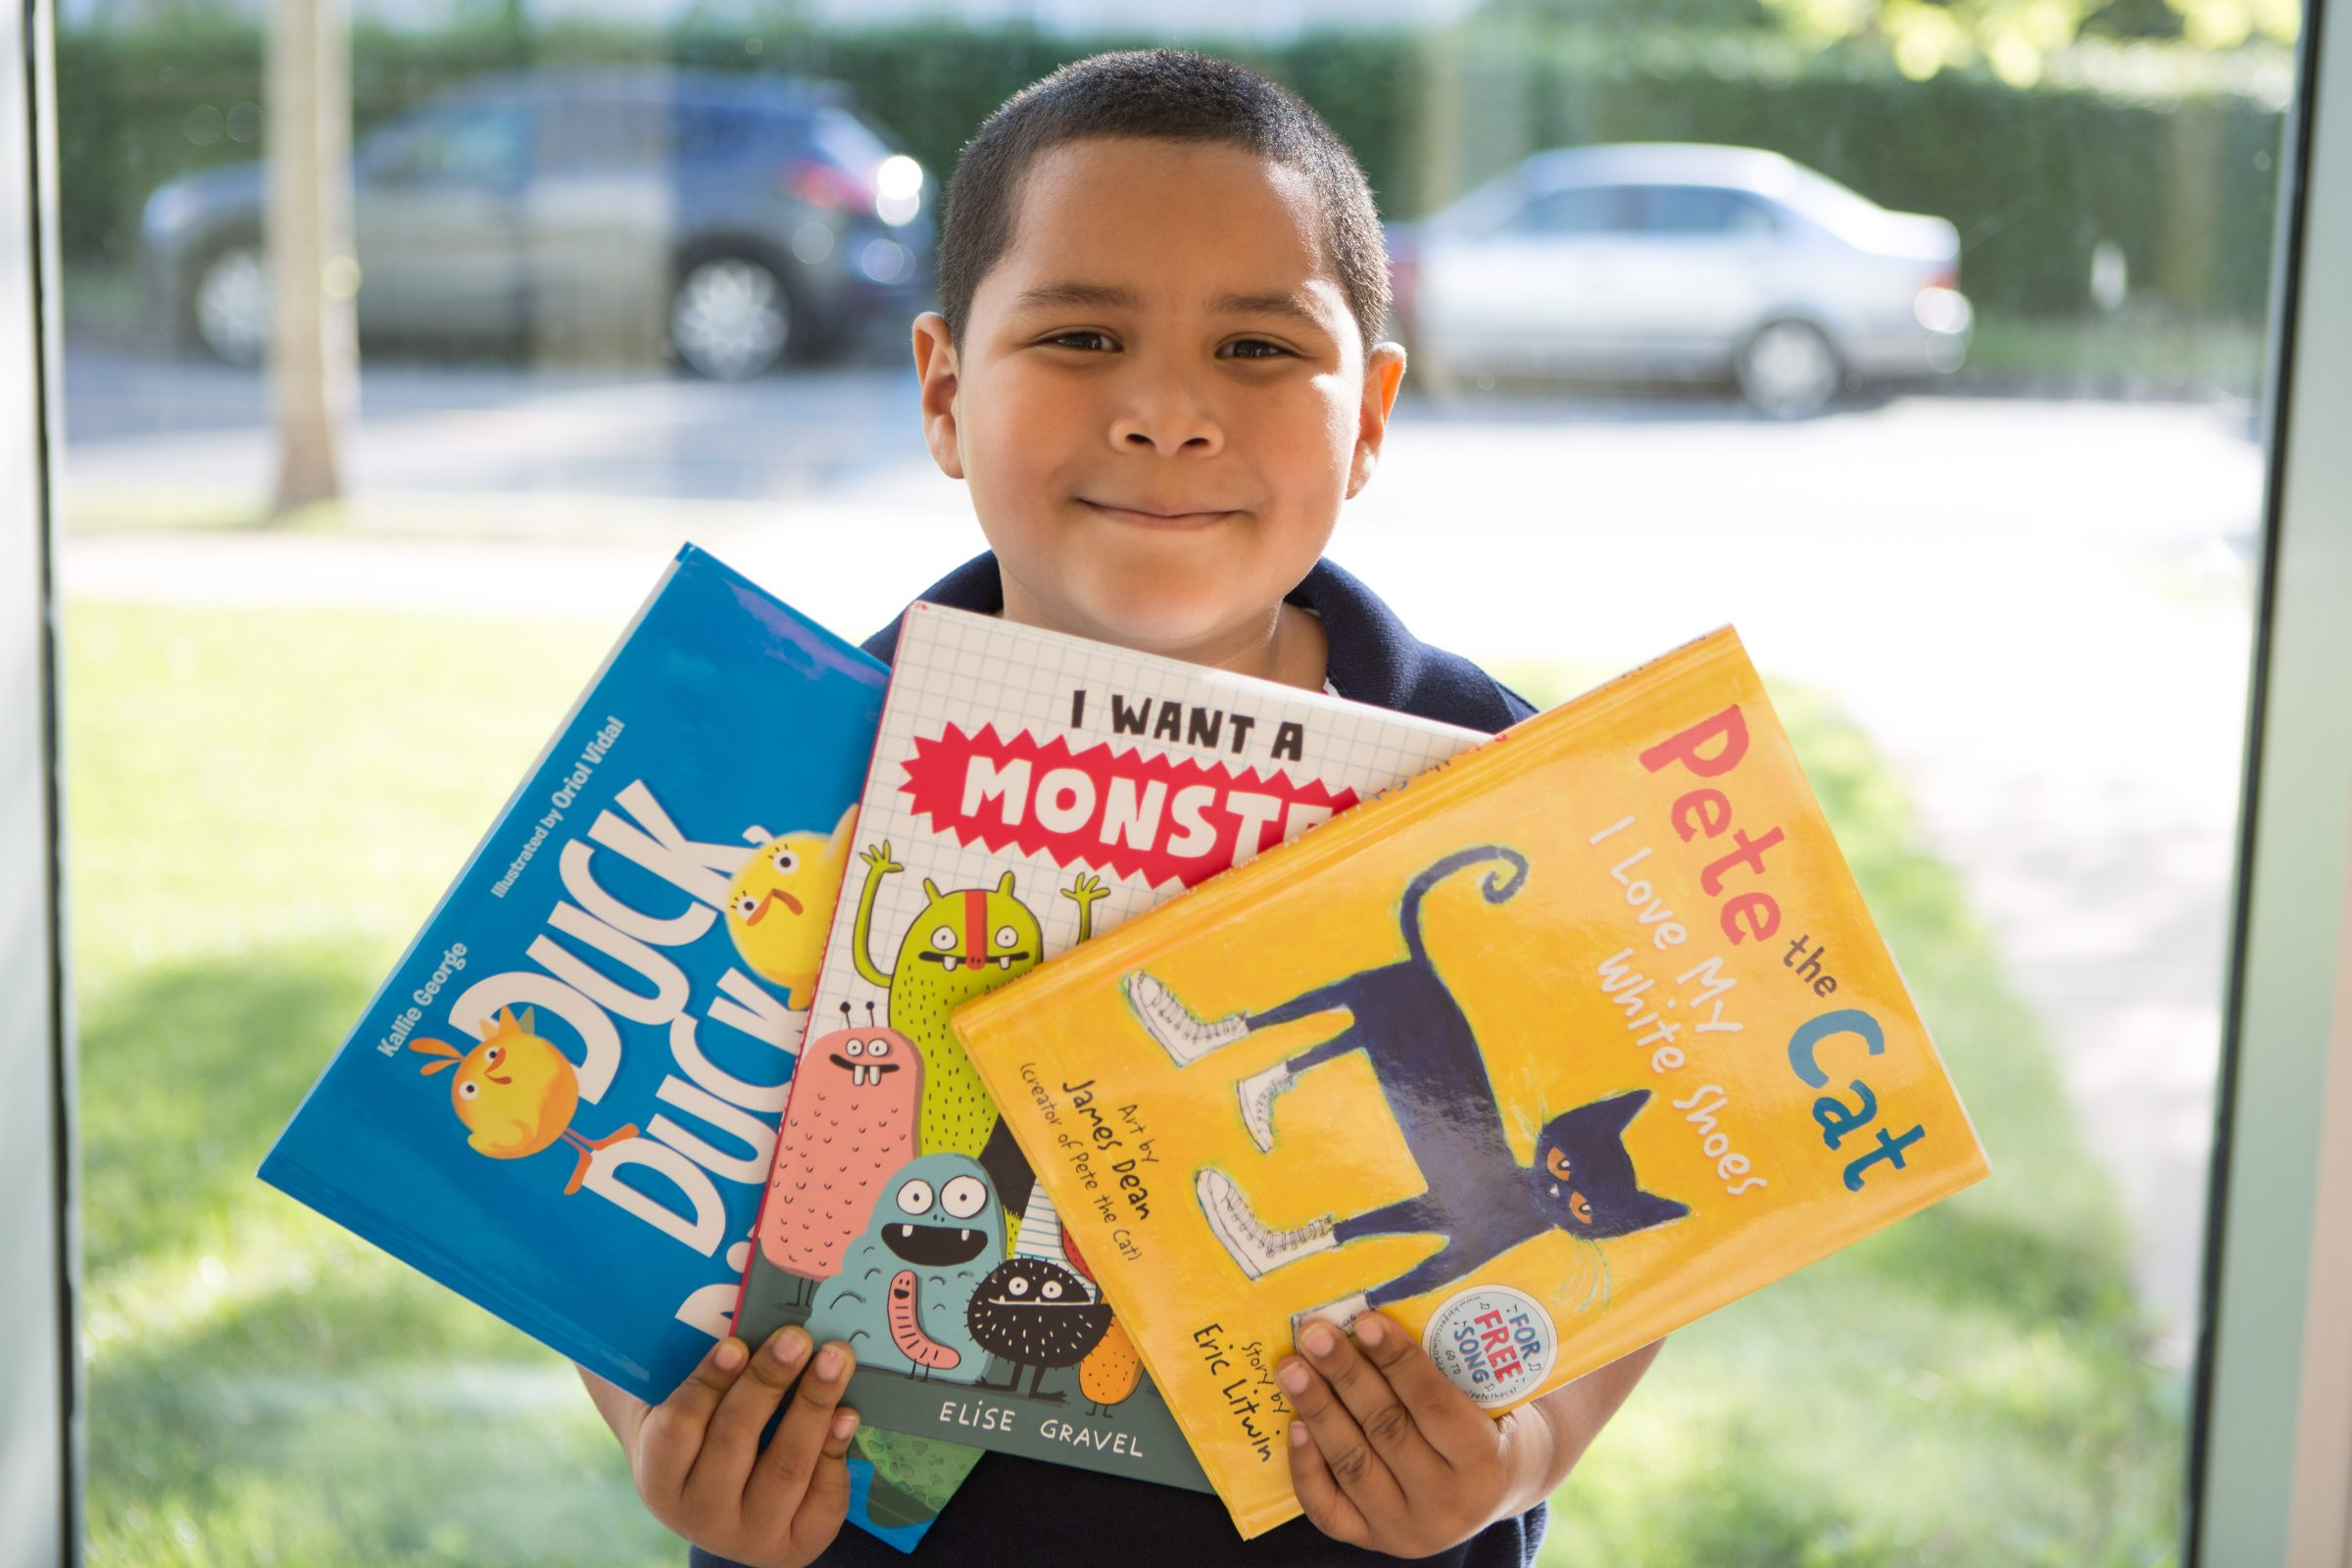 NHR student happily displays books he received in a giveaway.